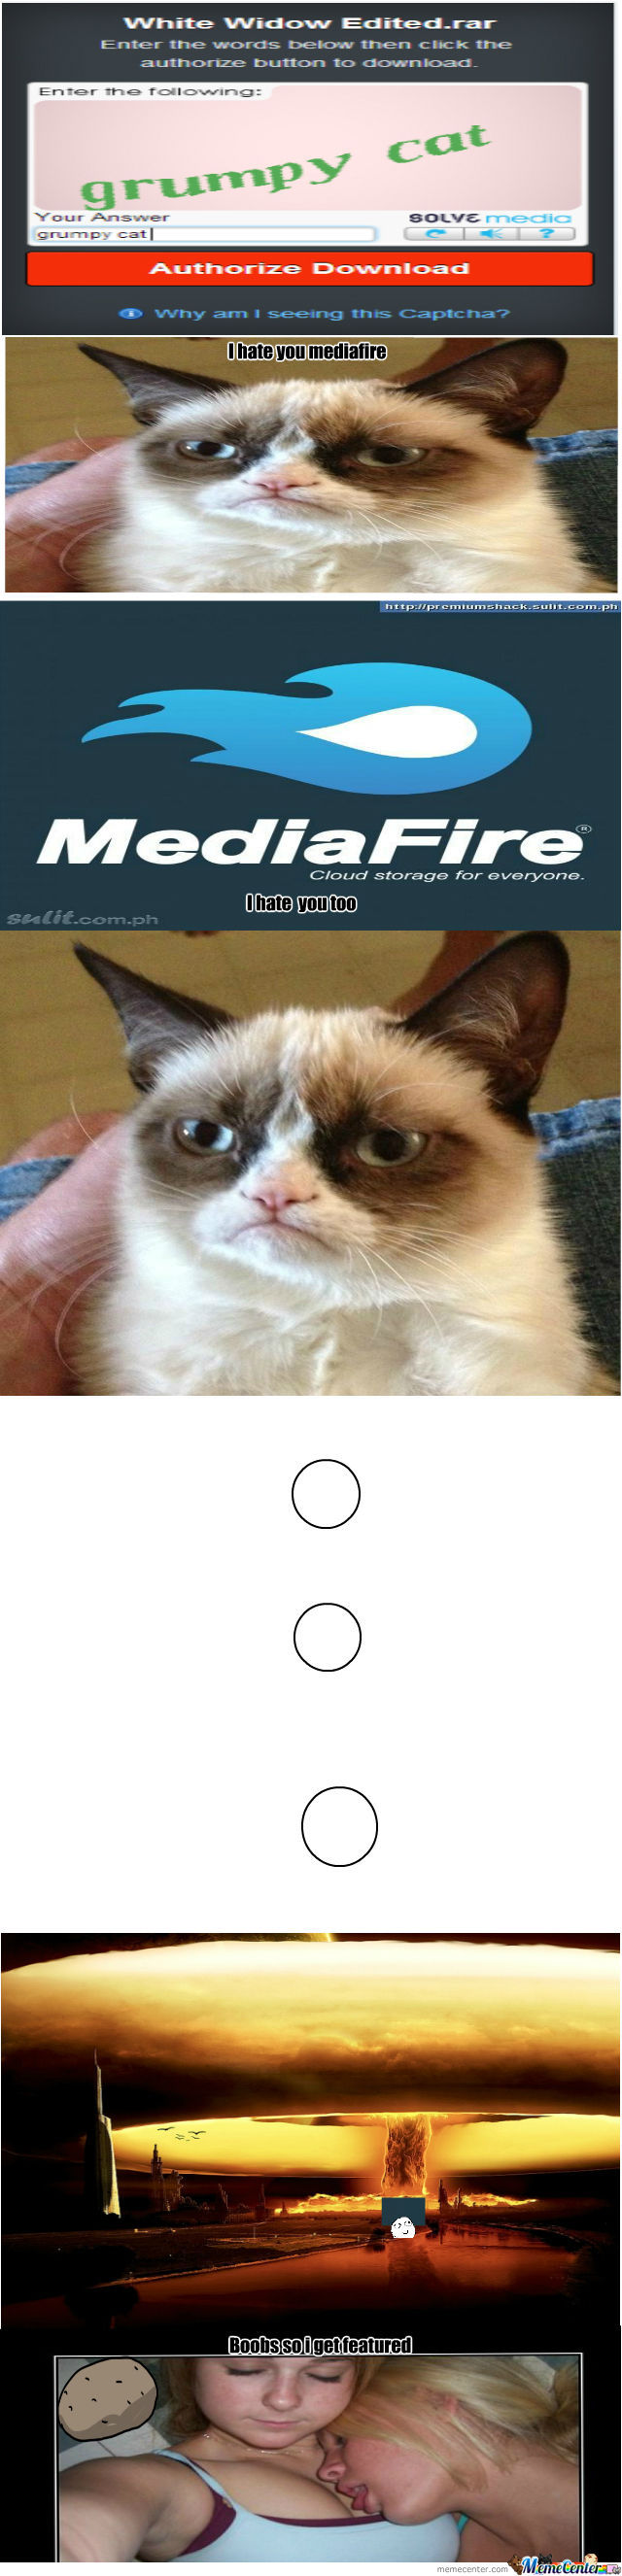 Mediafire Grumpy Cat